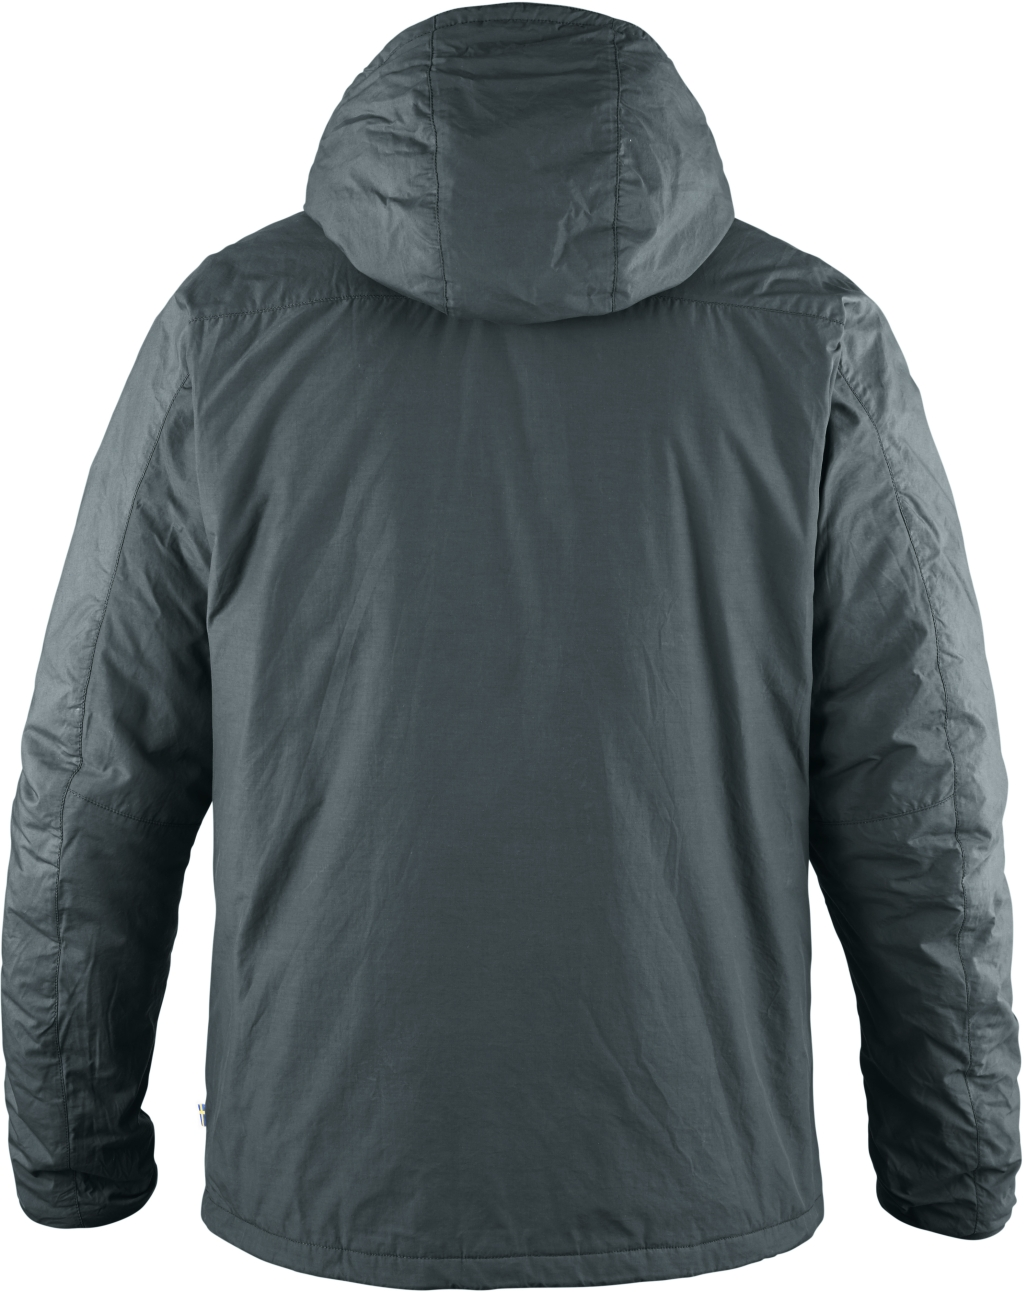 FjallRaven High Coast Padded Jacket Ash Grey-30